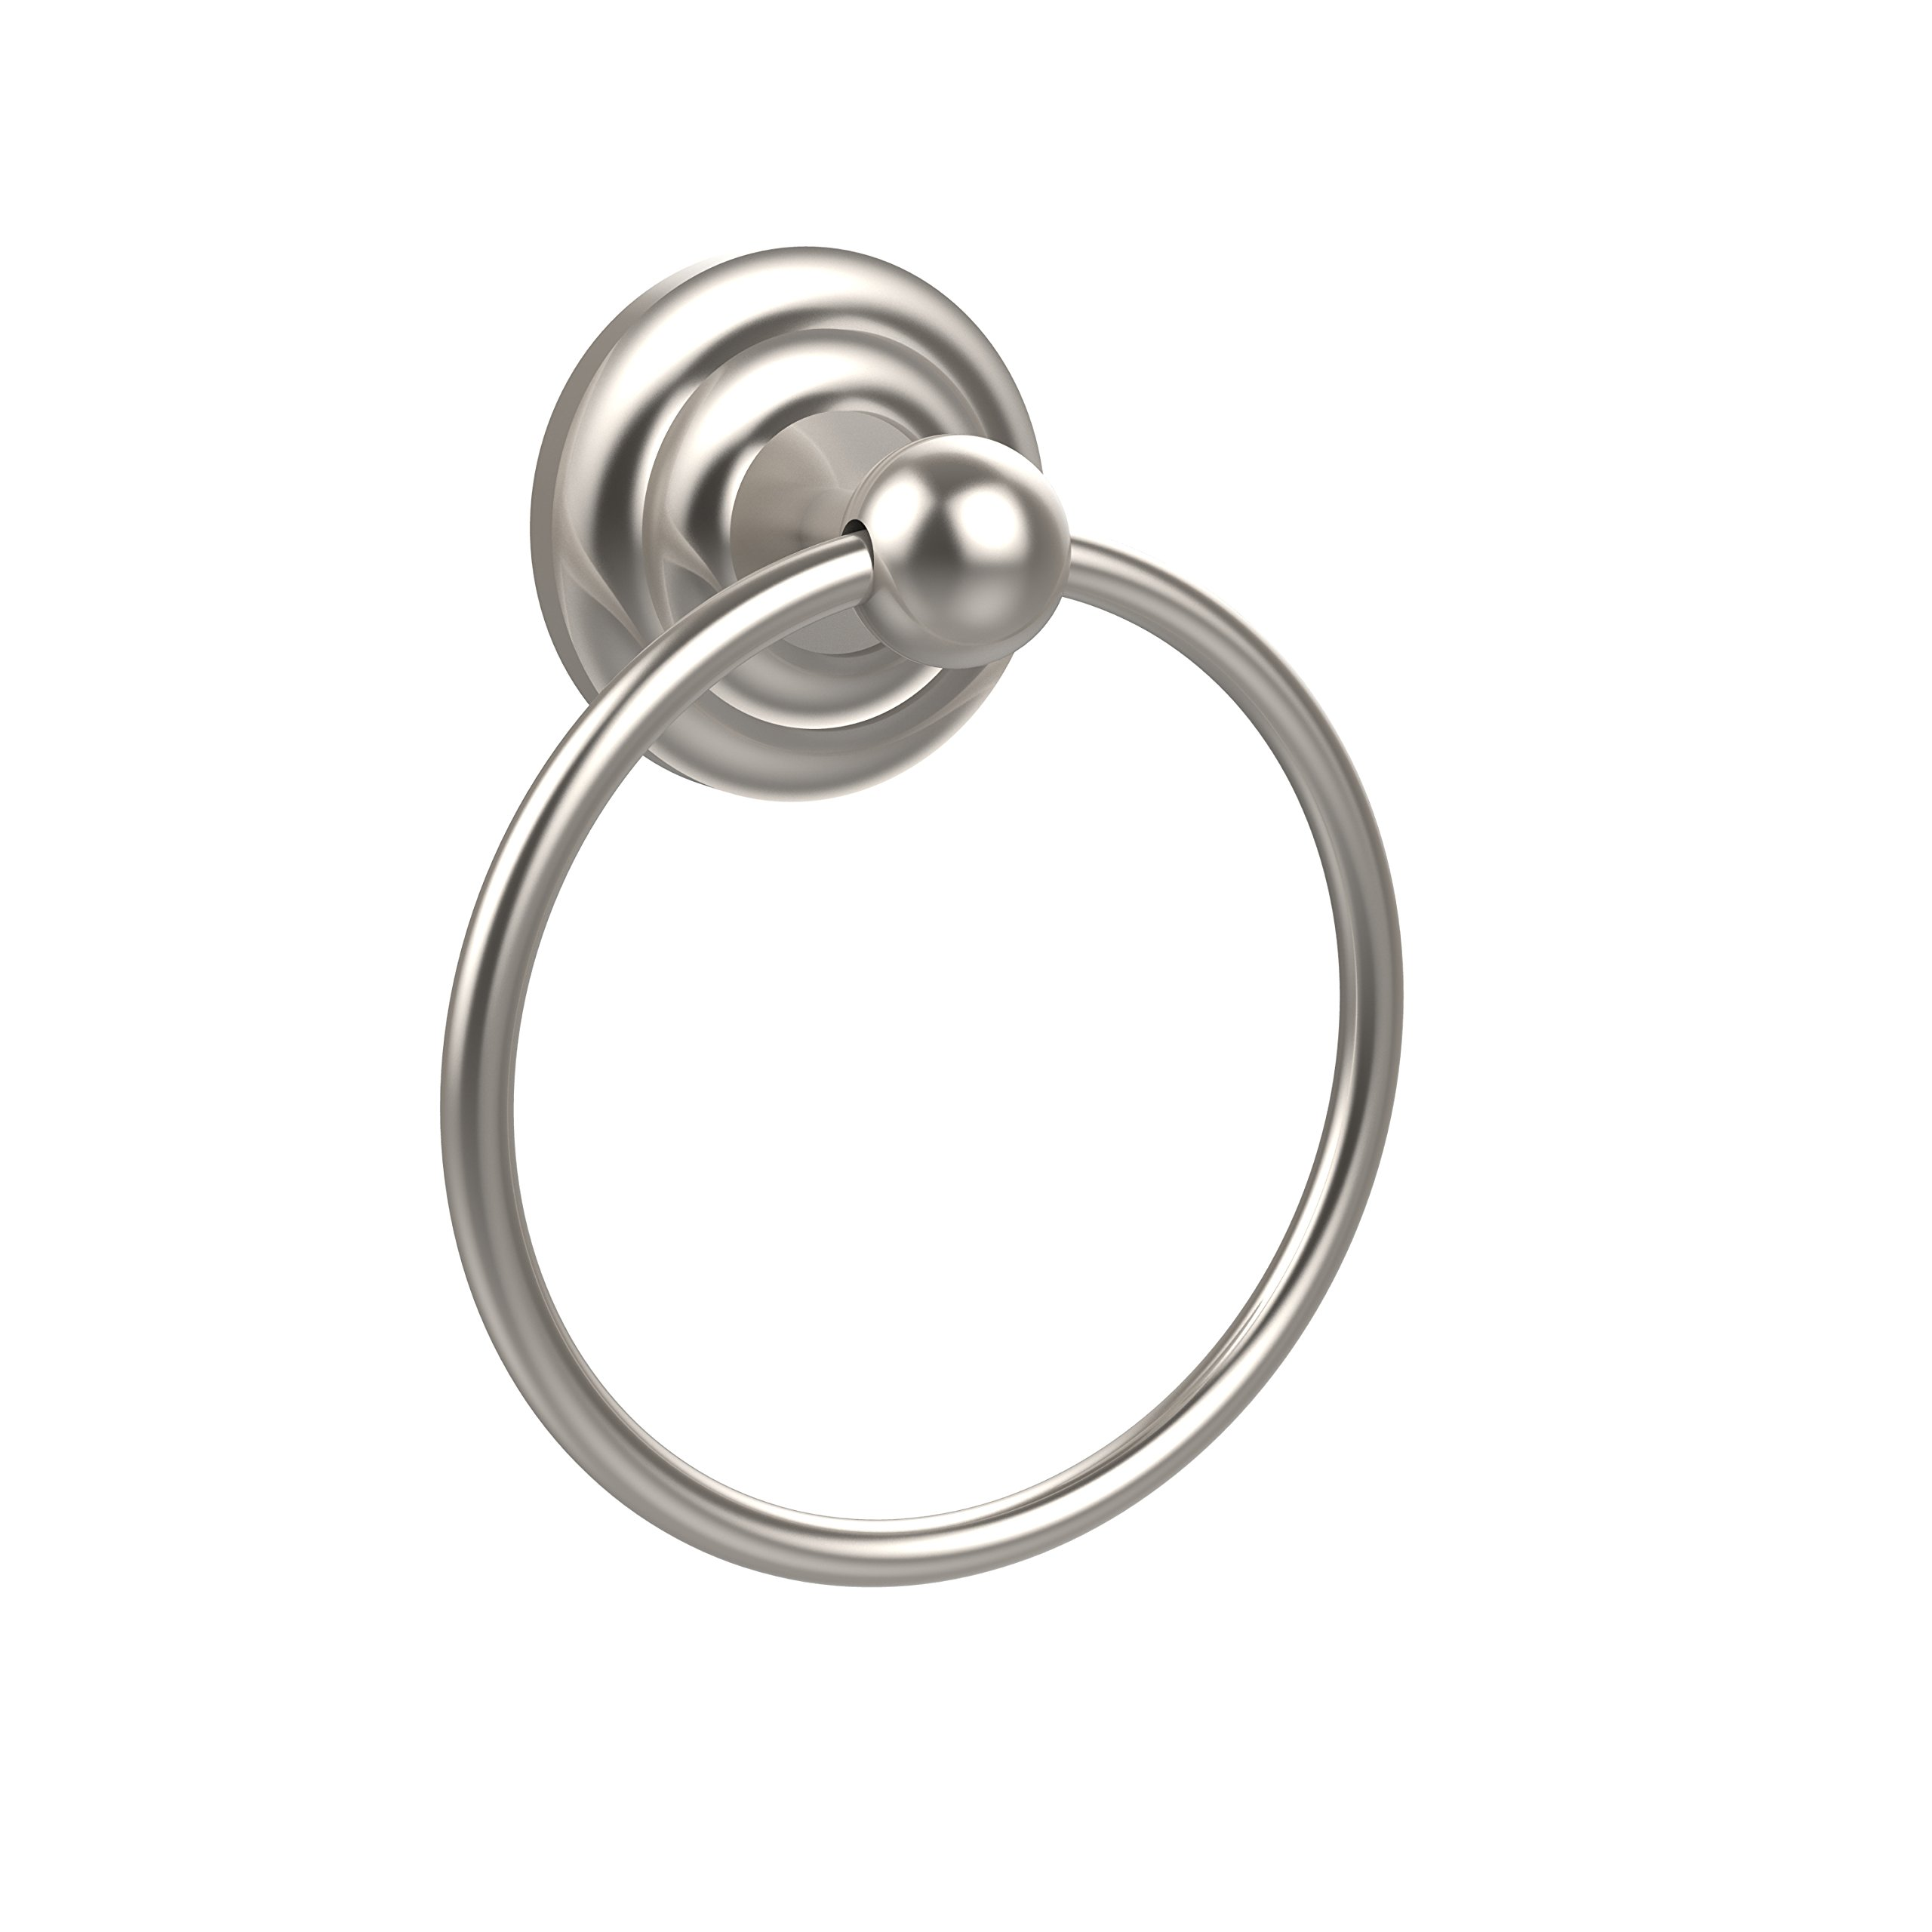 Allied Brass QN-16-SN 6-Inch Towel Ring, Satin Nickel